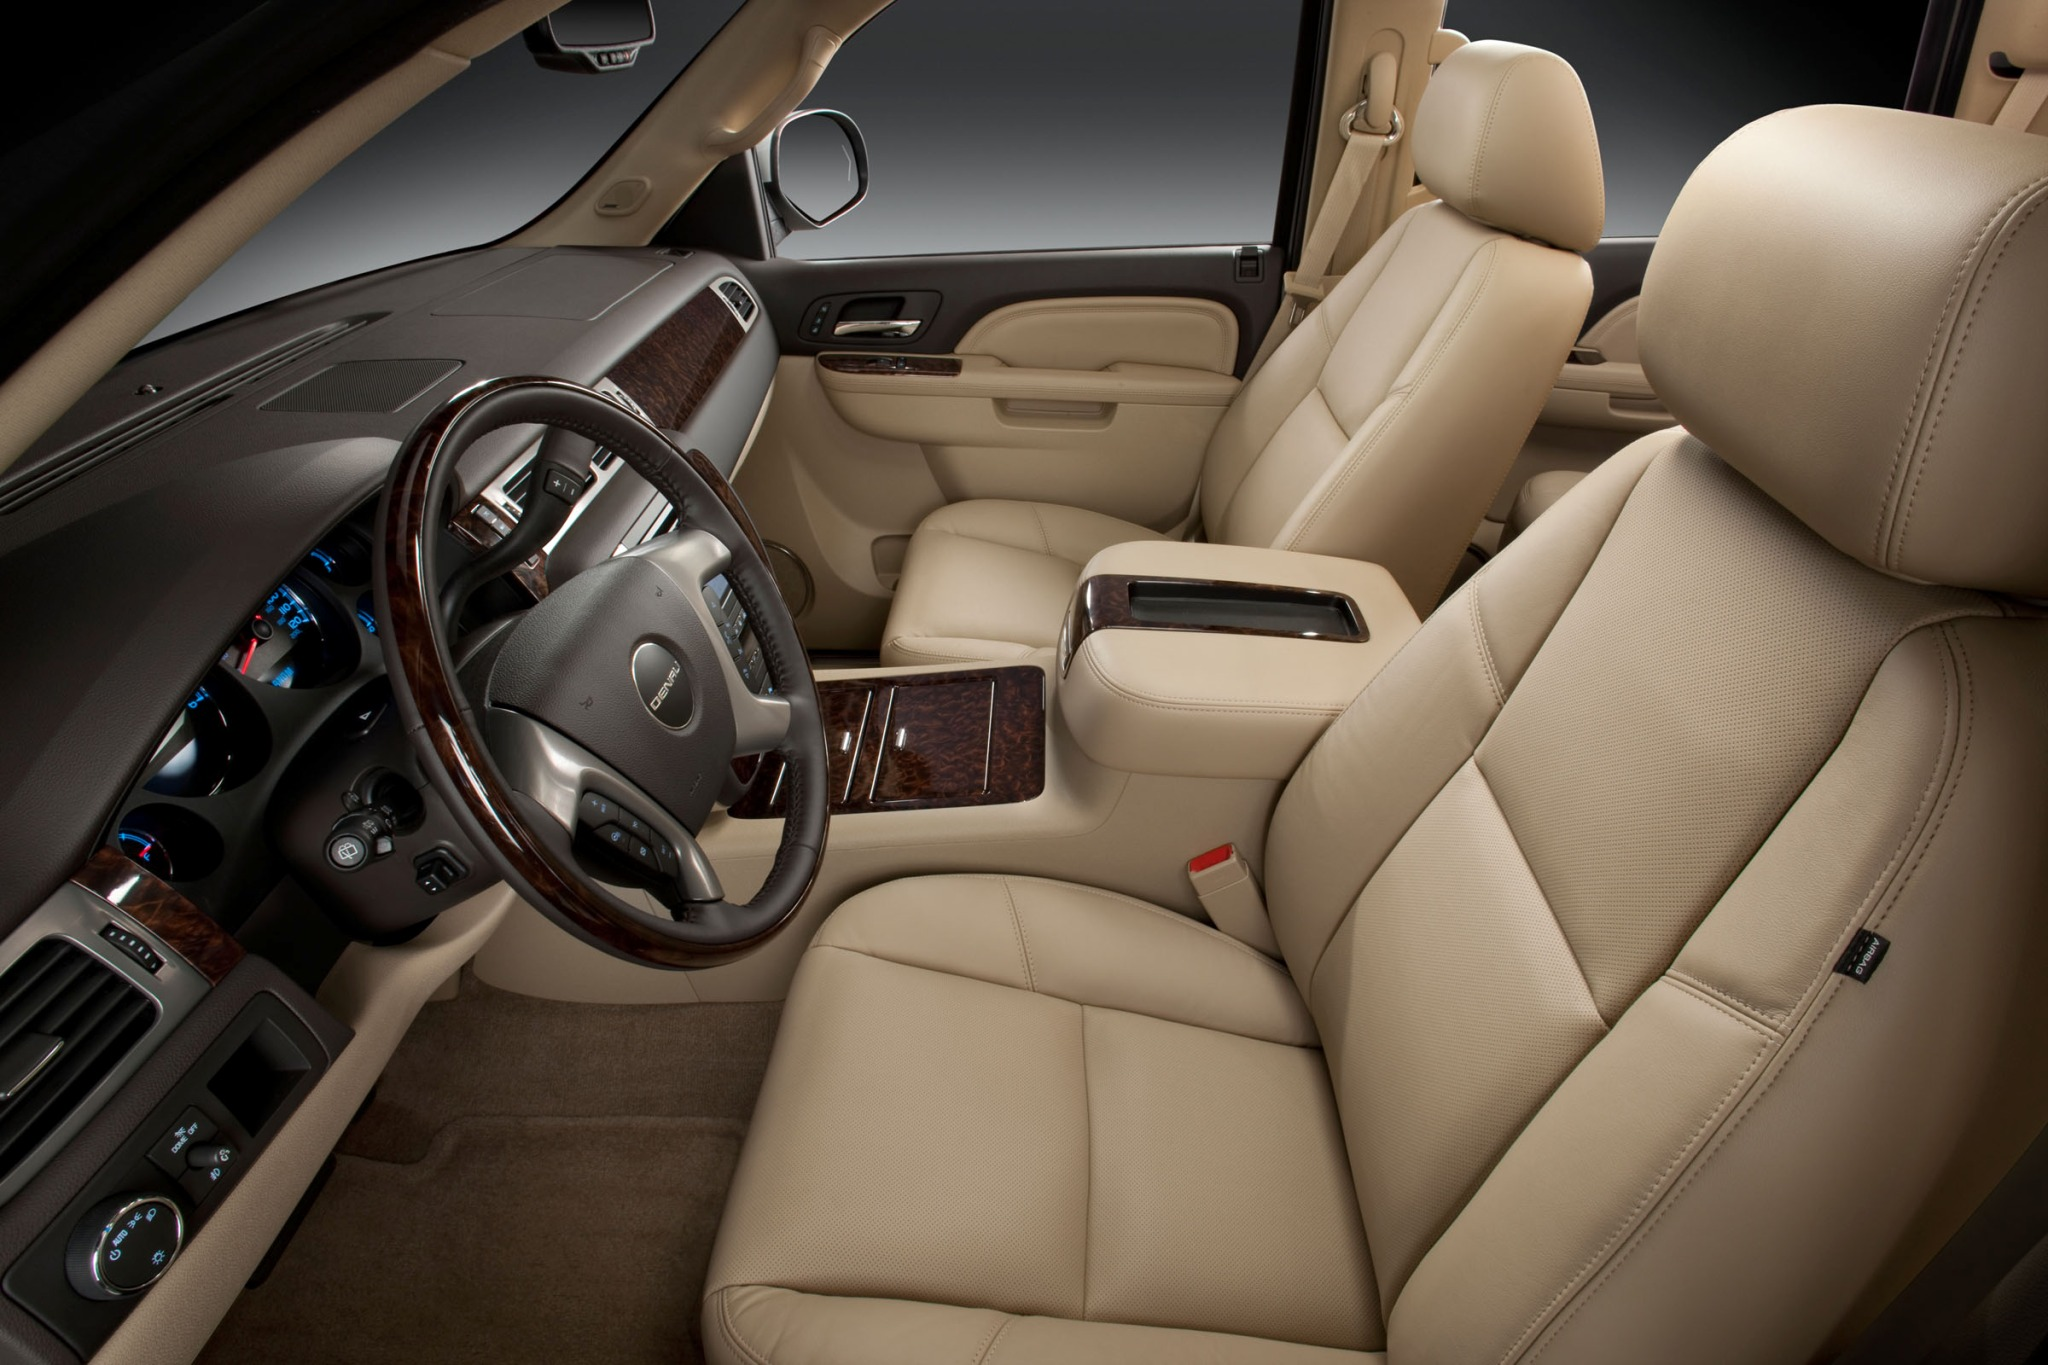 2013 GMC Yukon XL SLT 150 interior #5